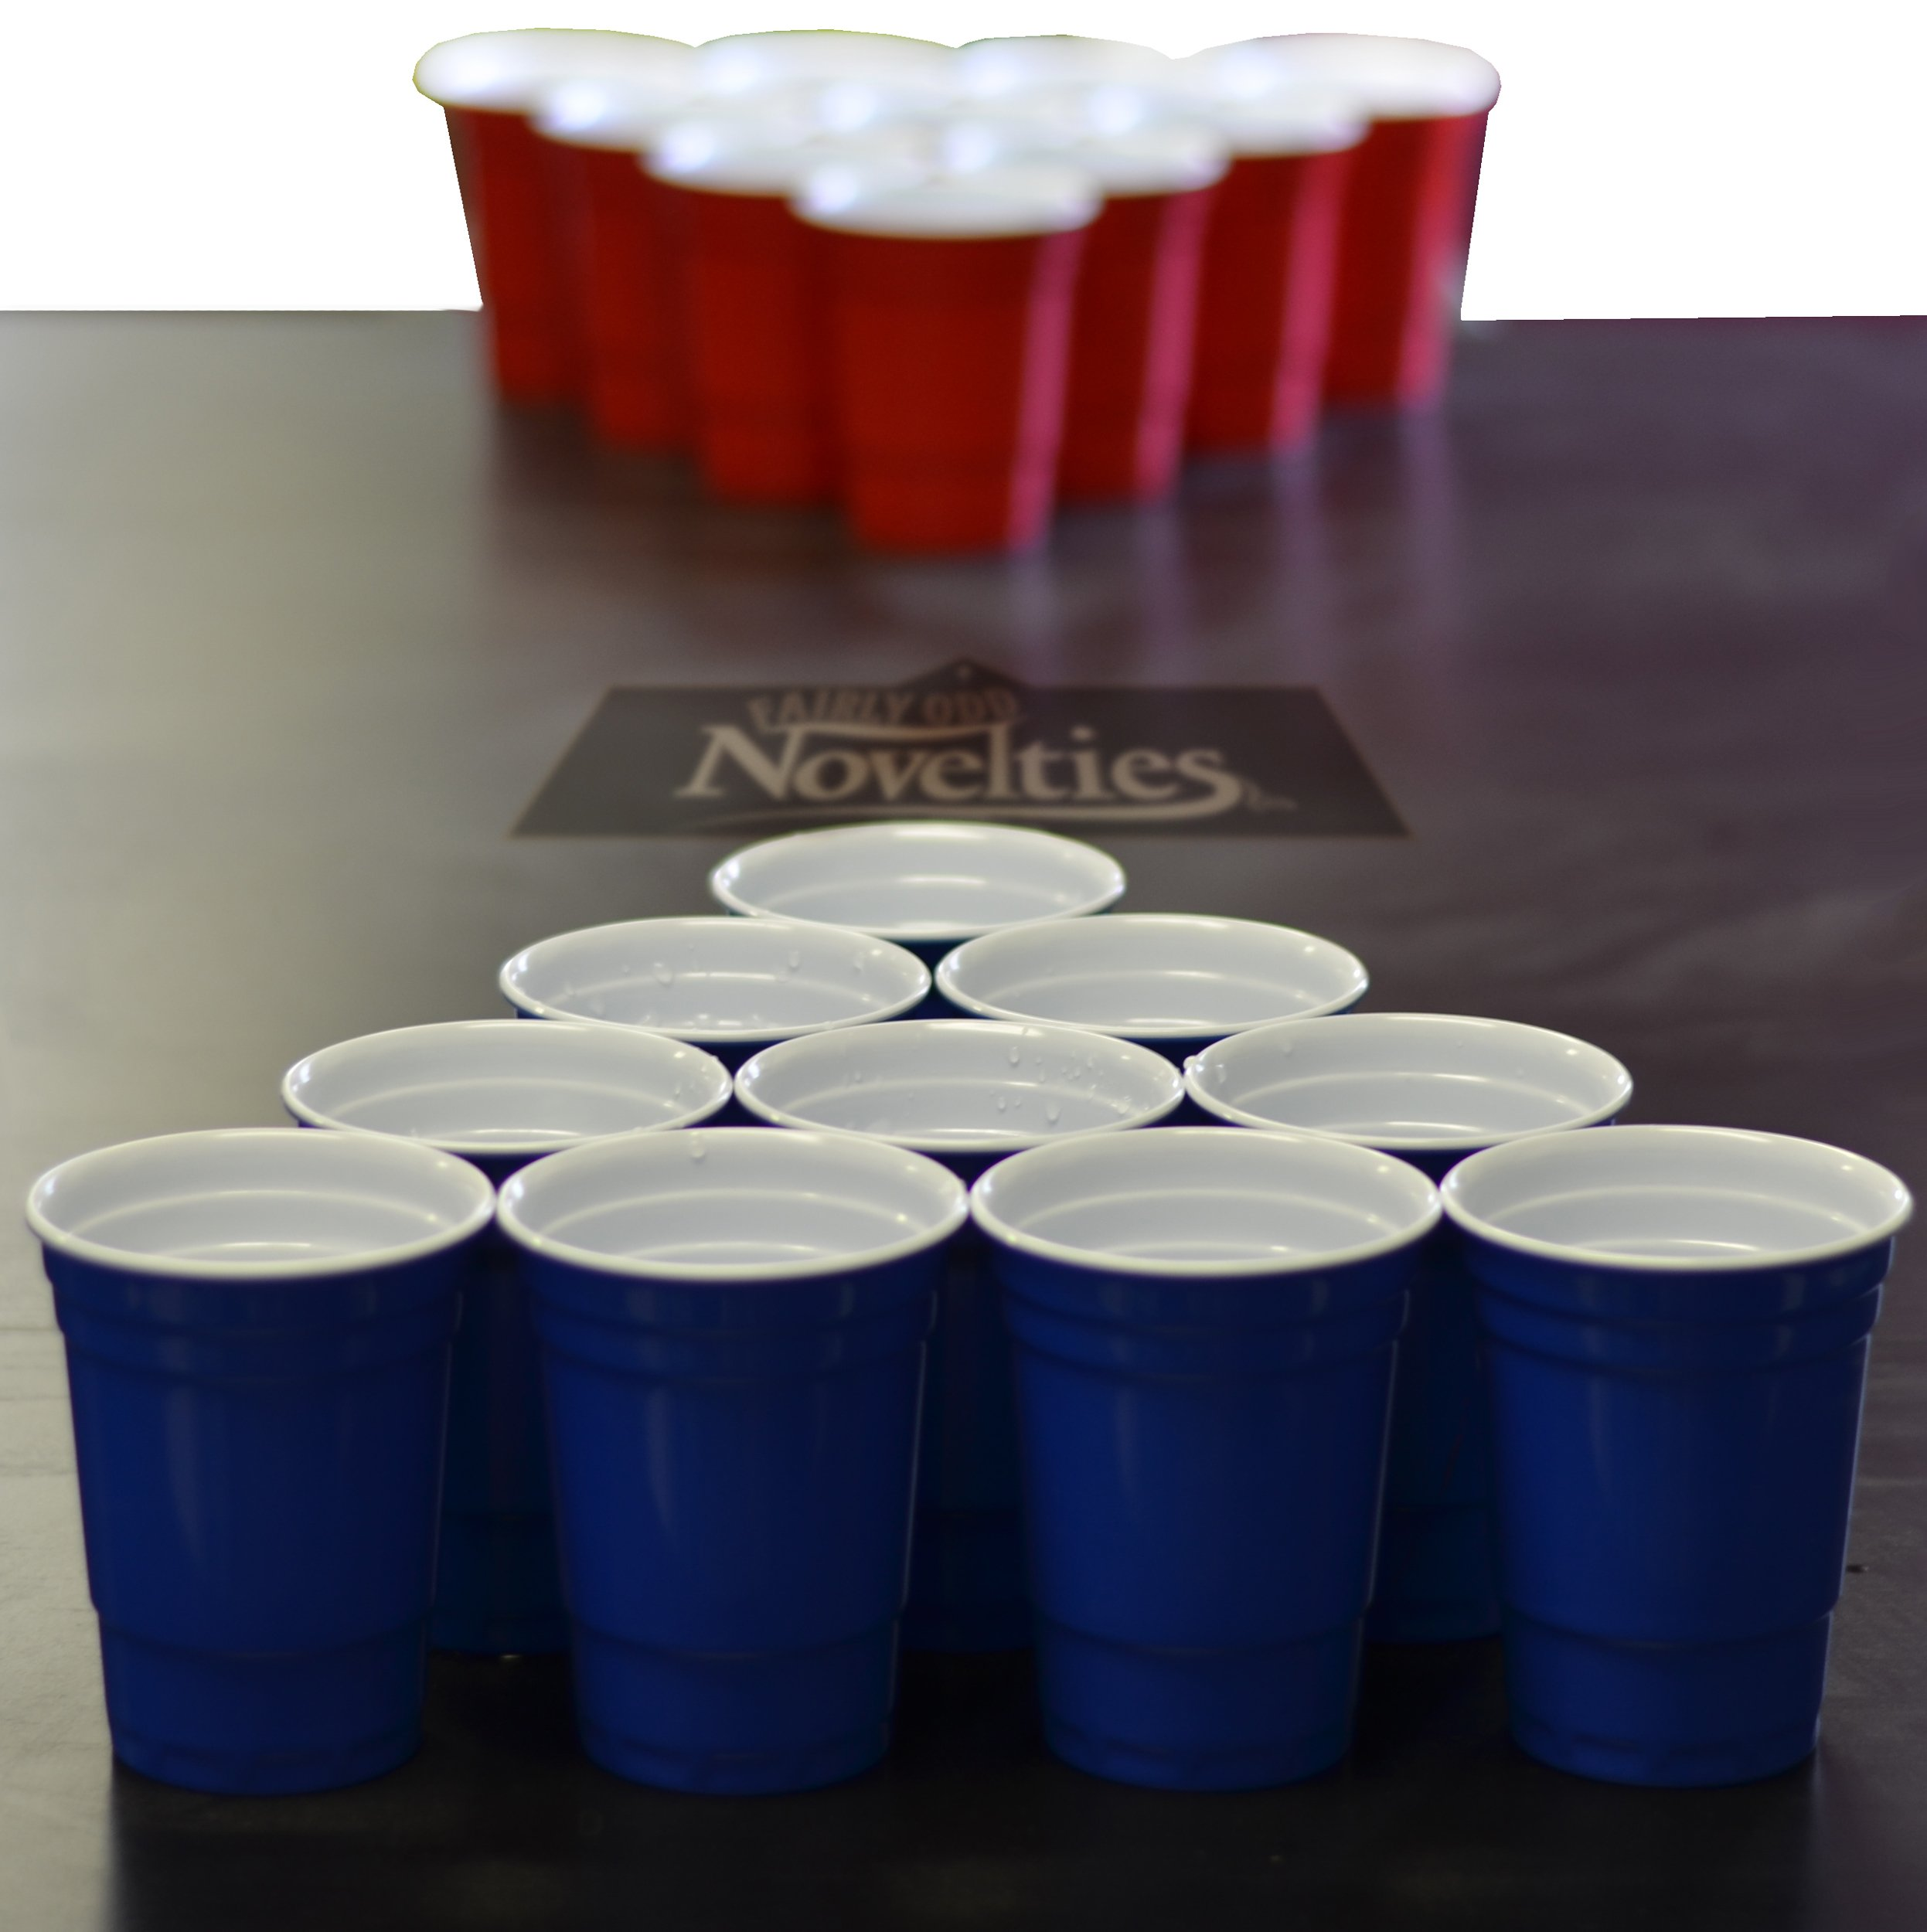 Pro Series Beer Pong Set - With Hard Plastic Melamine 20 Cups! by Fairly Odd Novelties (Image #1)